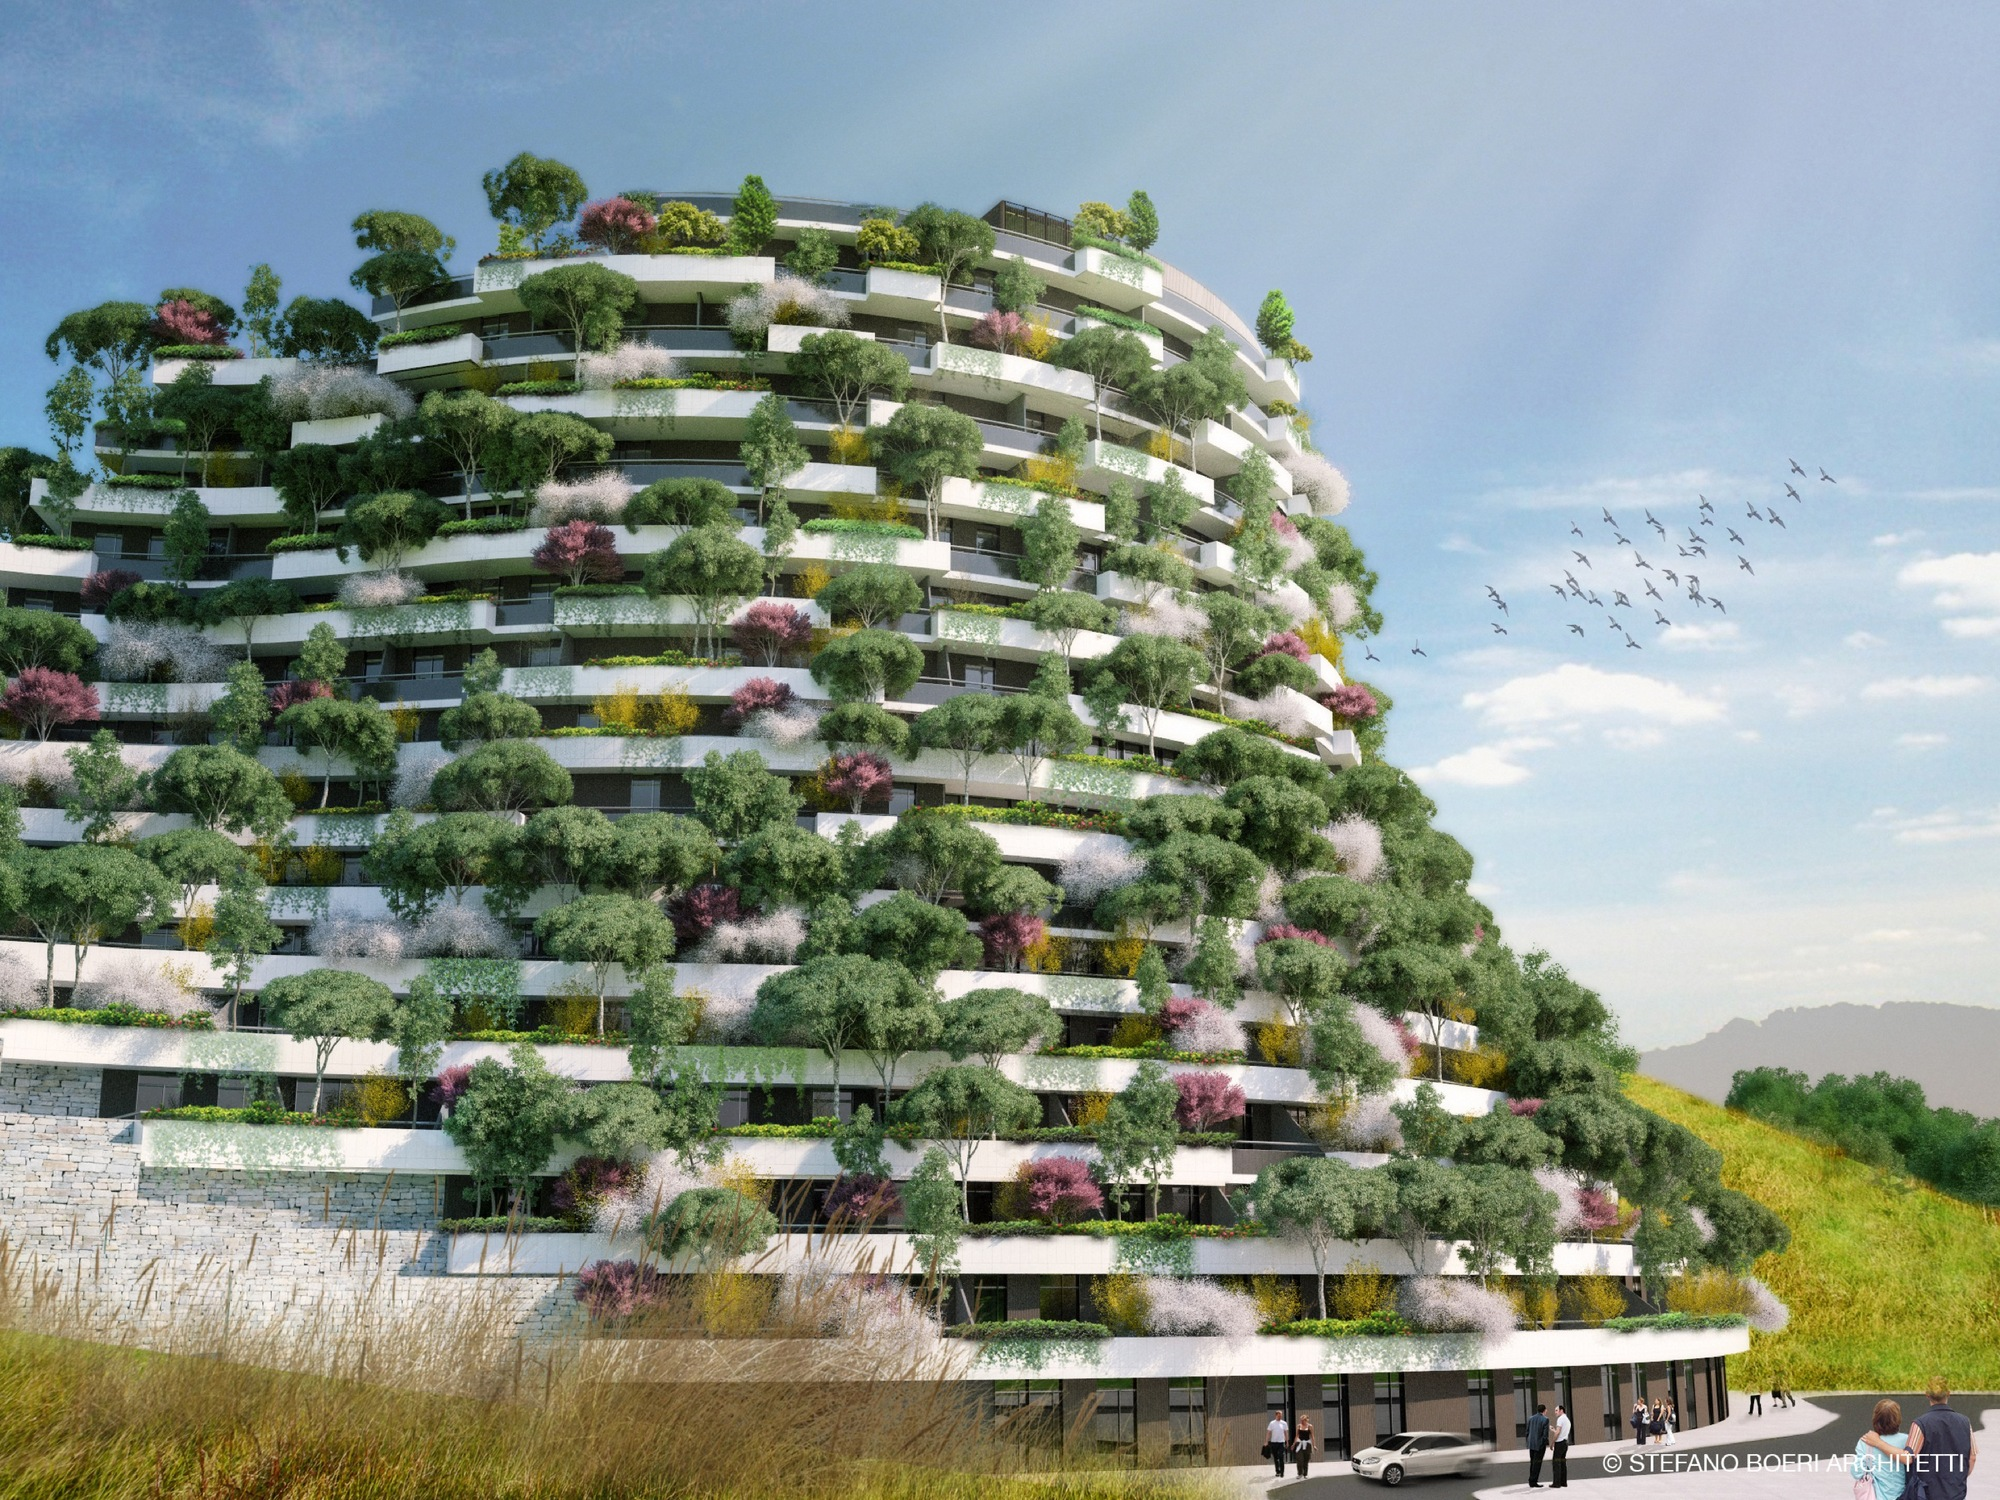 Hotel Designs stefano boeri architetti designs vertical forest hotel in remote